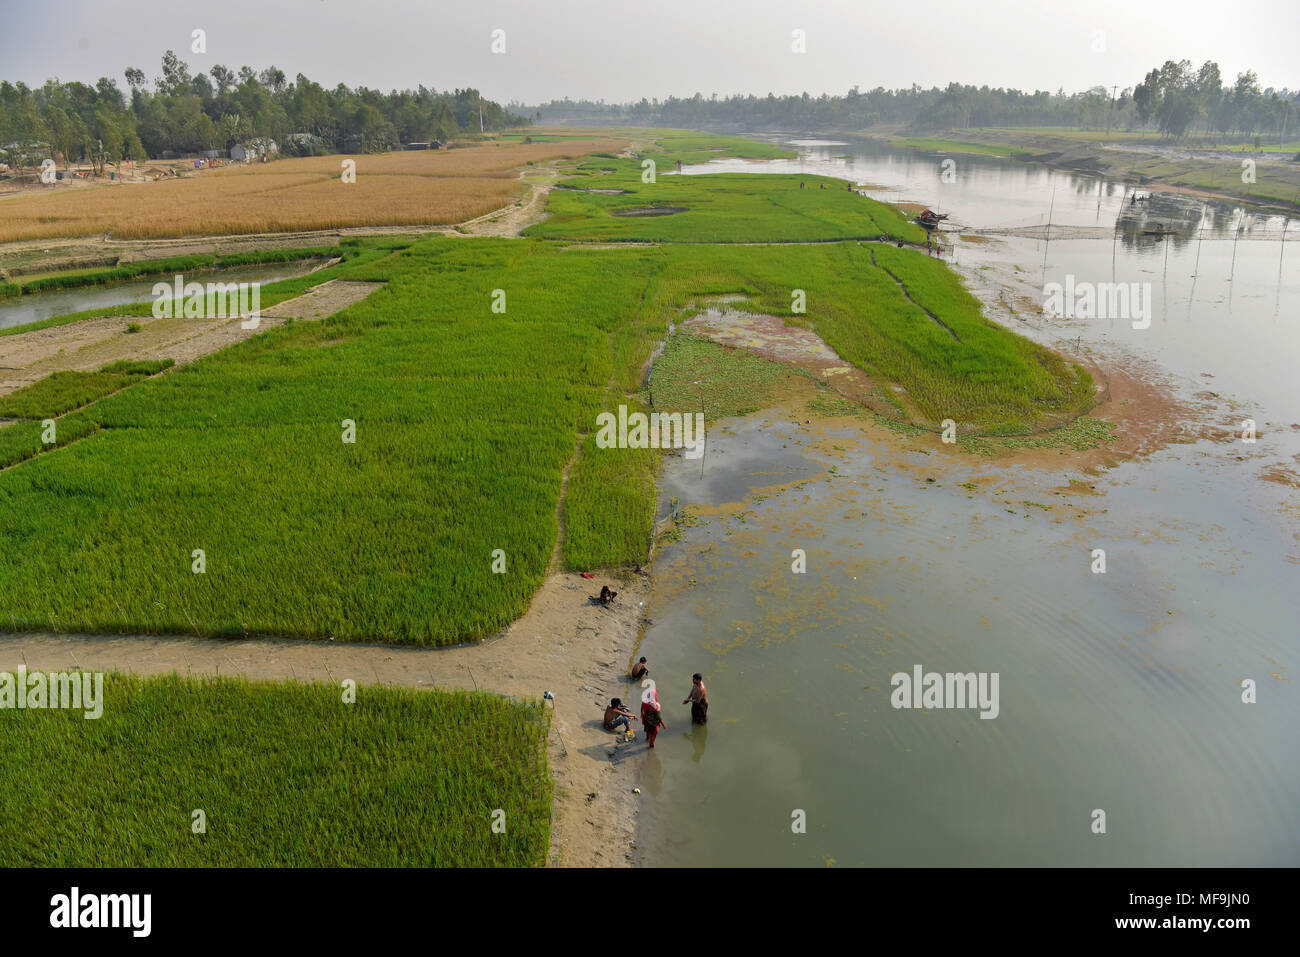 Bogra, Bangladesh - February 28, 2017: The Bangali River is embracing a slow death due to lack of dredging and/or as a consequence of human encroachme - Stock Image